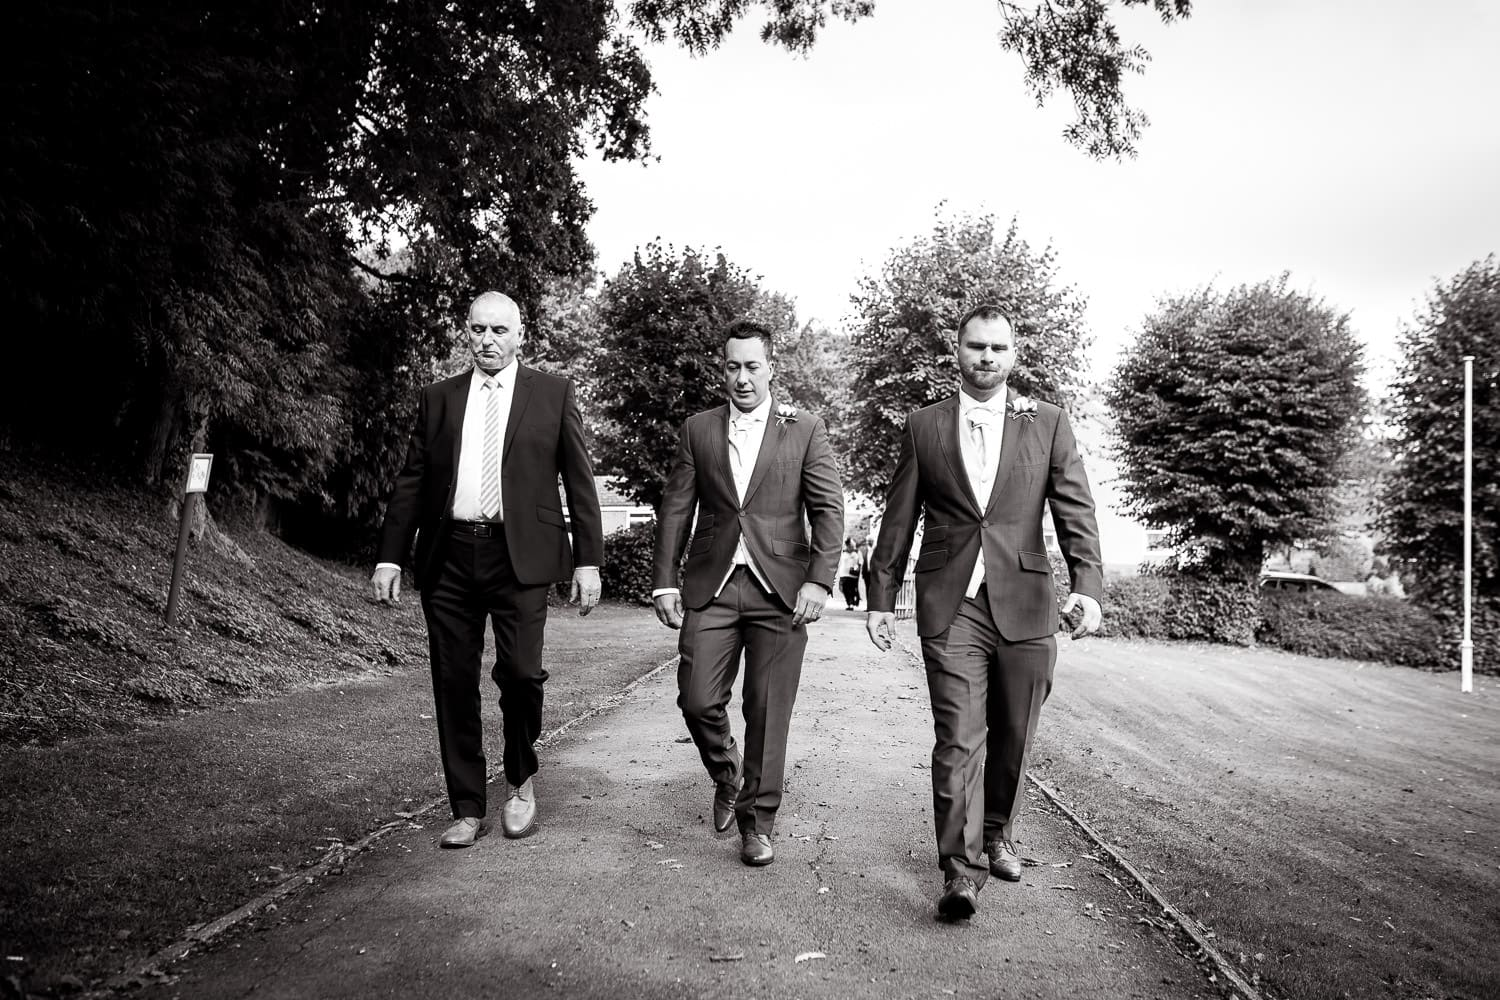 Grooms party march to the ceremony